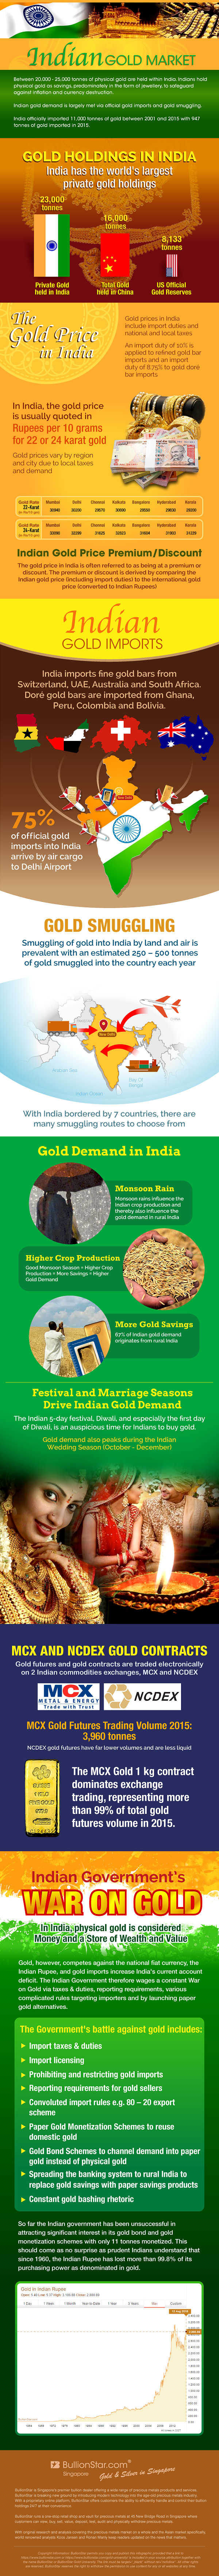 The Indian Gold Market